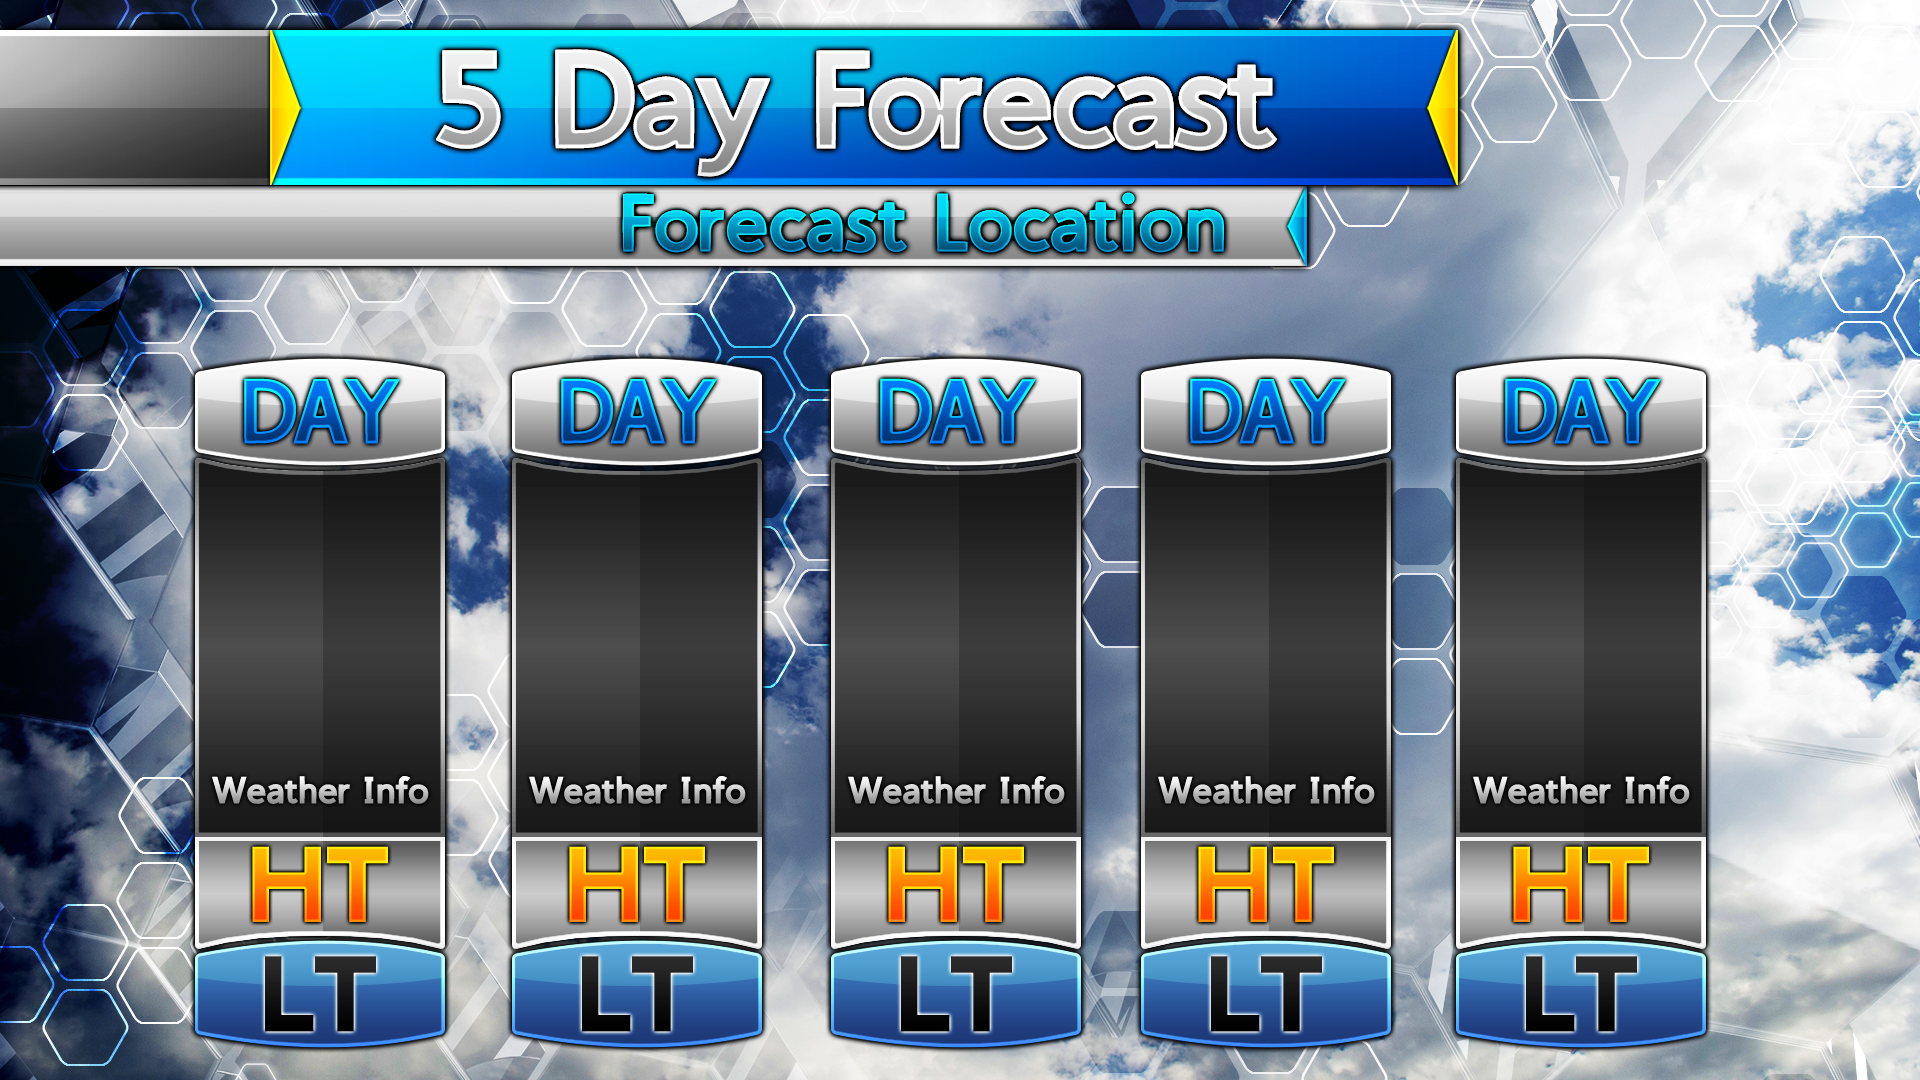 Weather Today: 5 Day Weather Forecast Blank Template